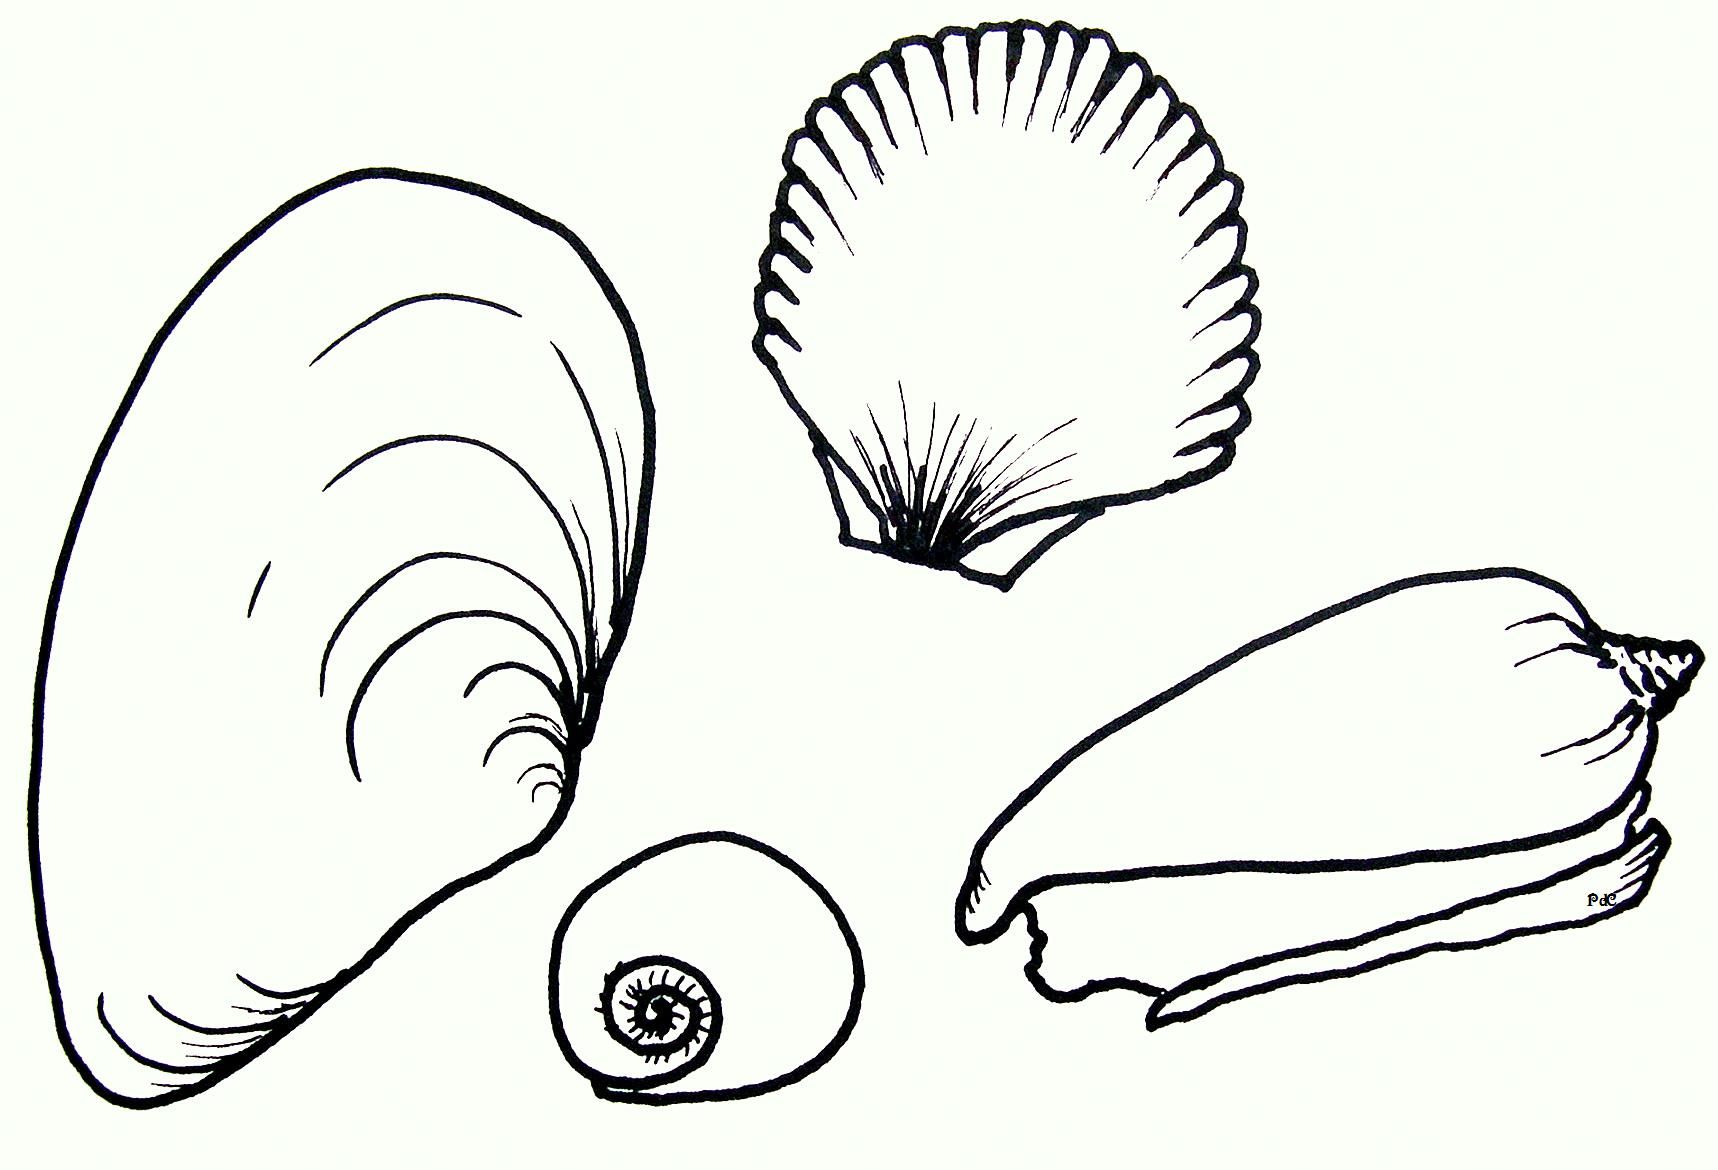 seashells Coloring pages, Truck coloring pages, Cars